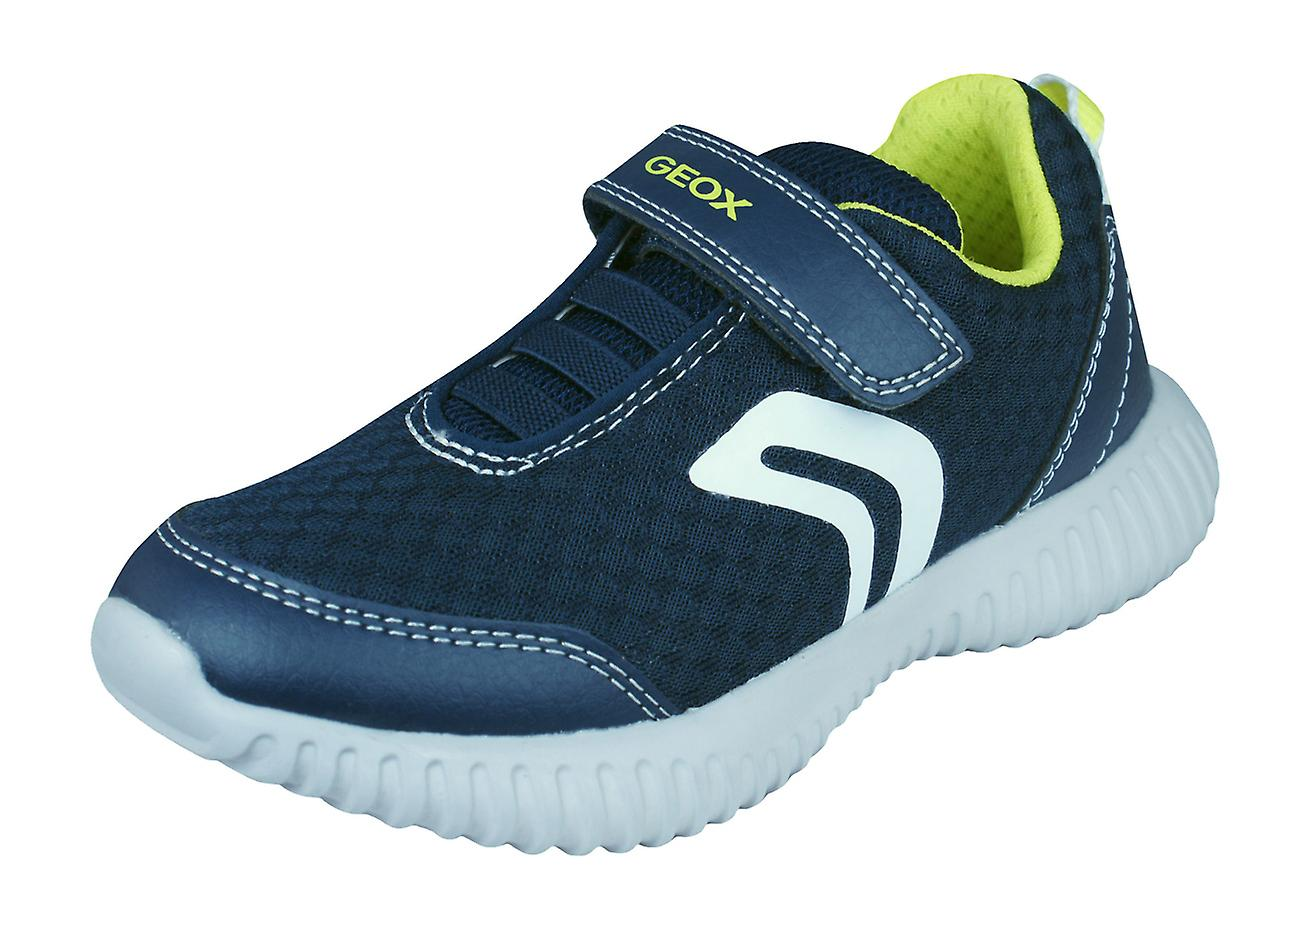 Geox Boys Trainers Shoes J Waviness B.A Casual Shoes Trainers - Navy 8d9373